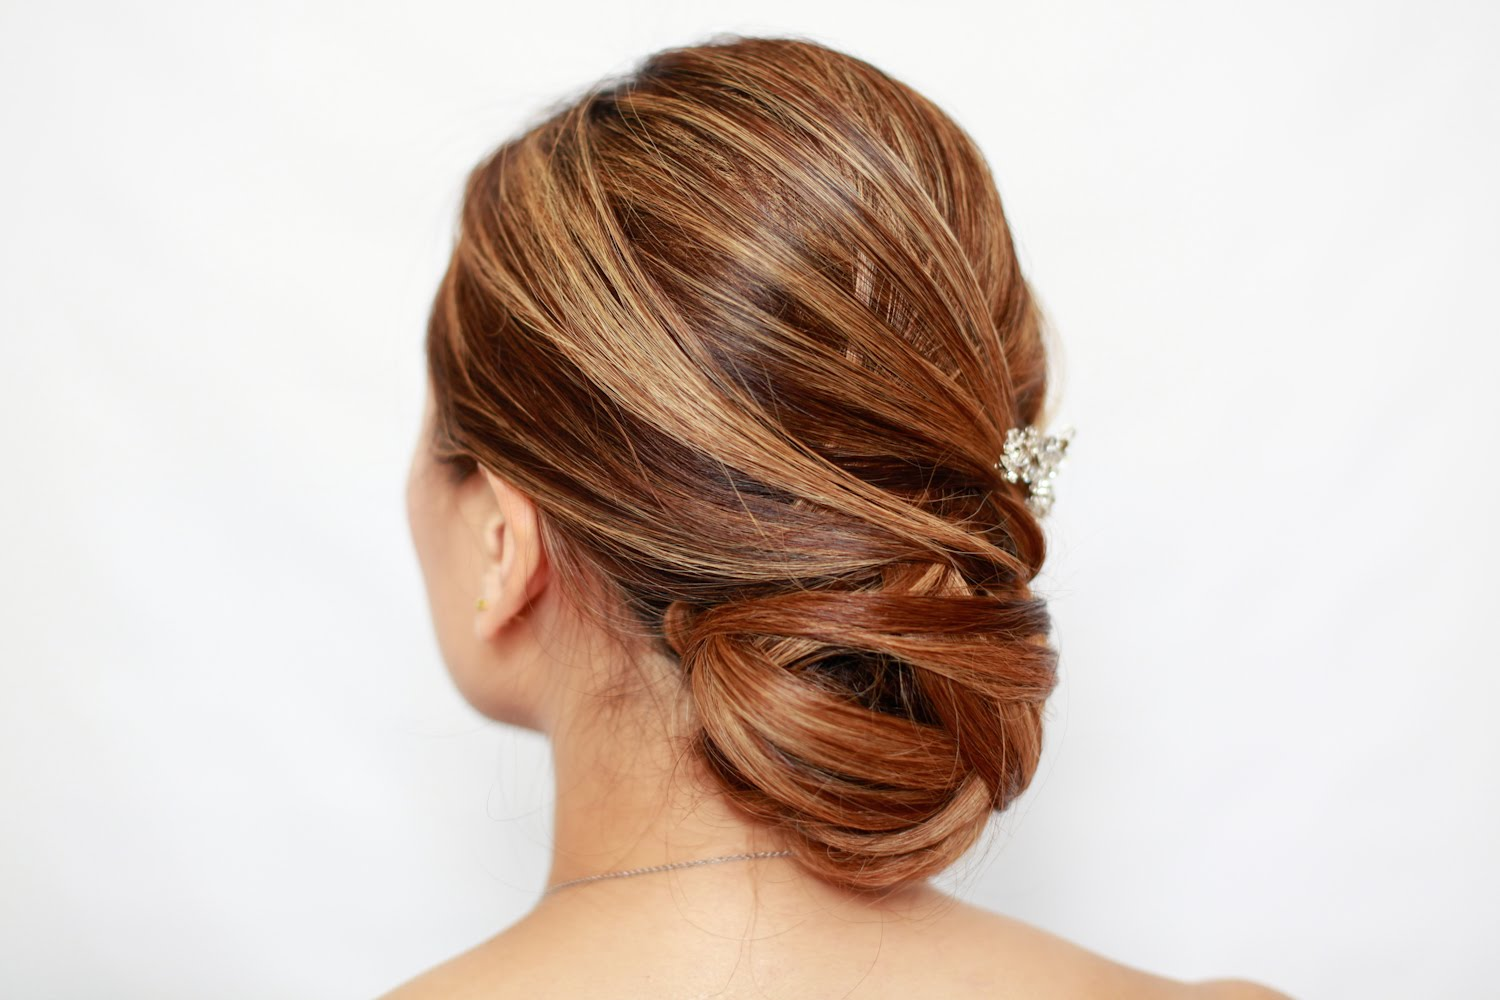 How To Do A Basket Weave Updo : Basket weave updo pdartistry professional hair and